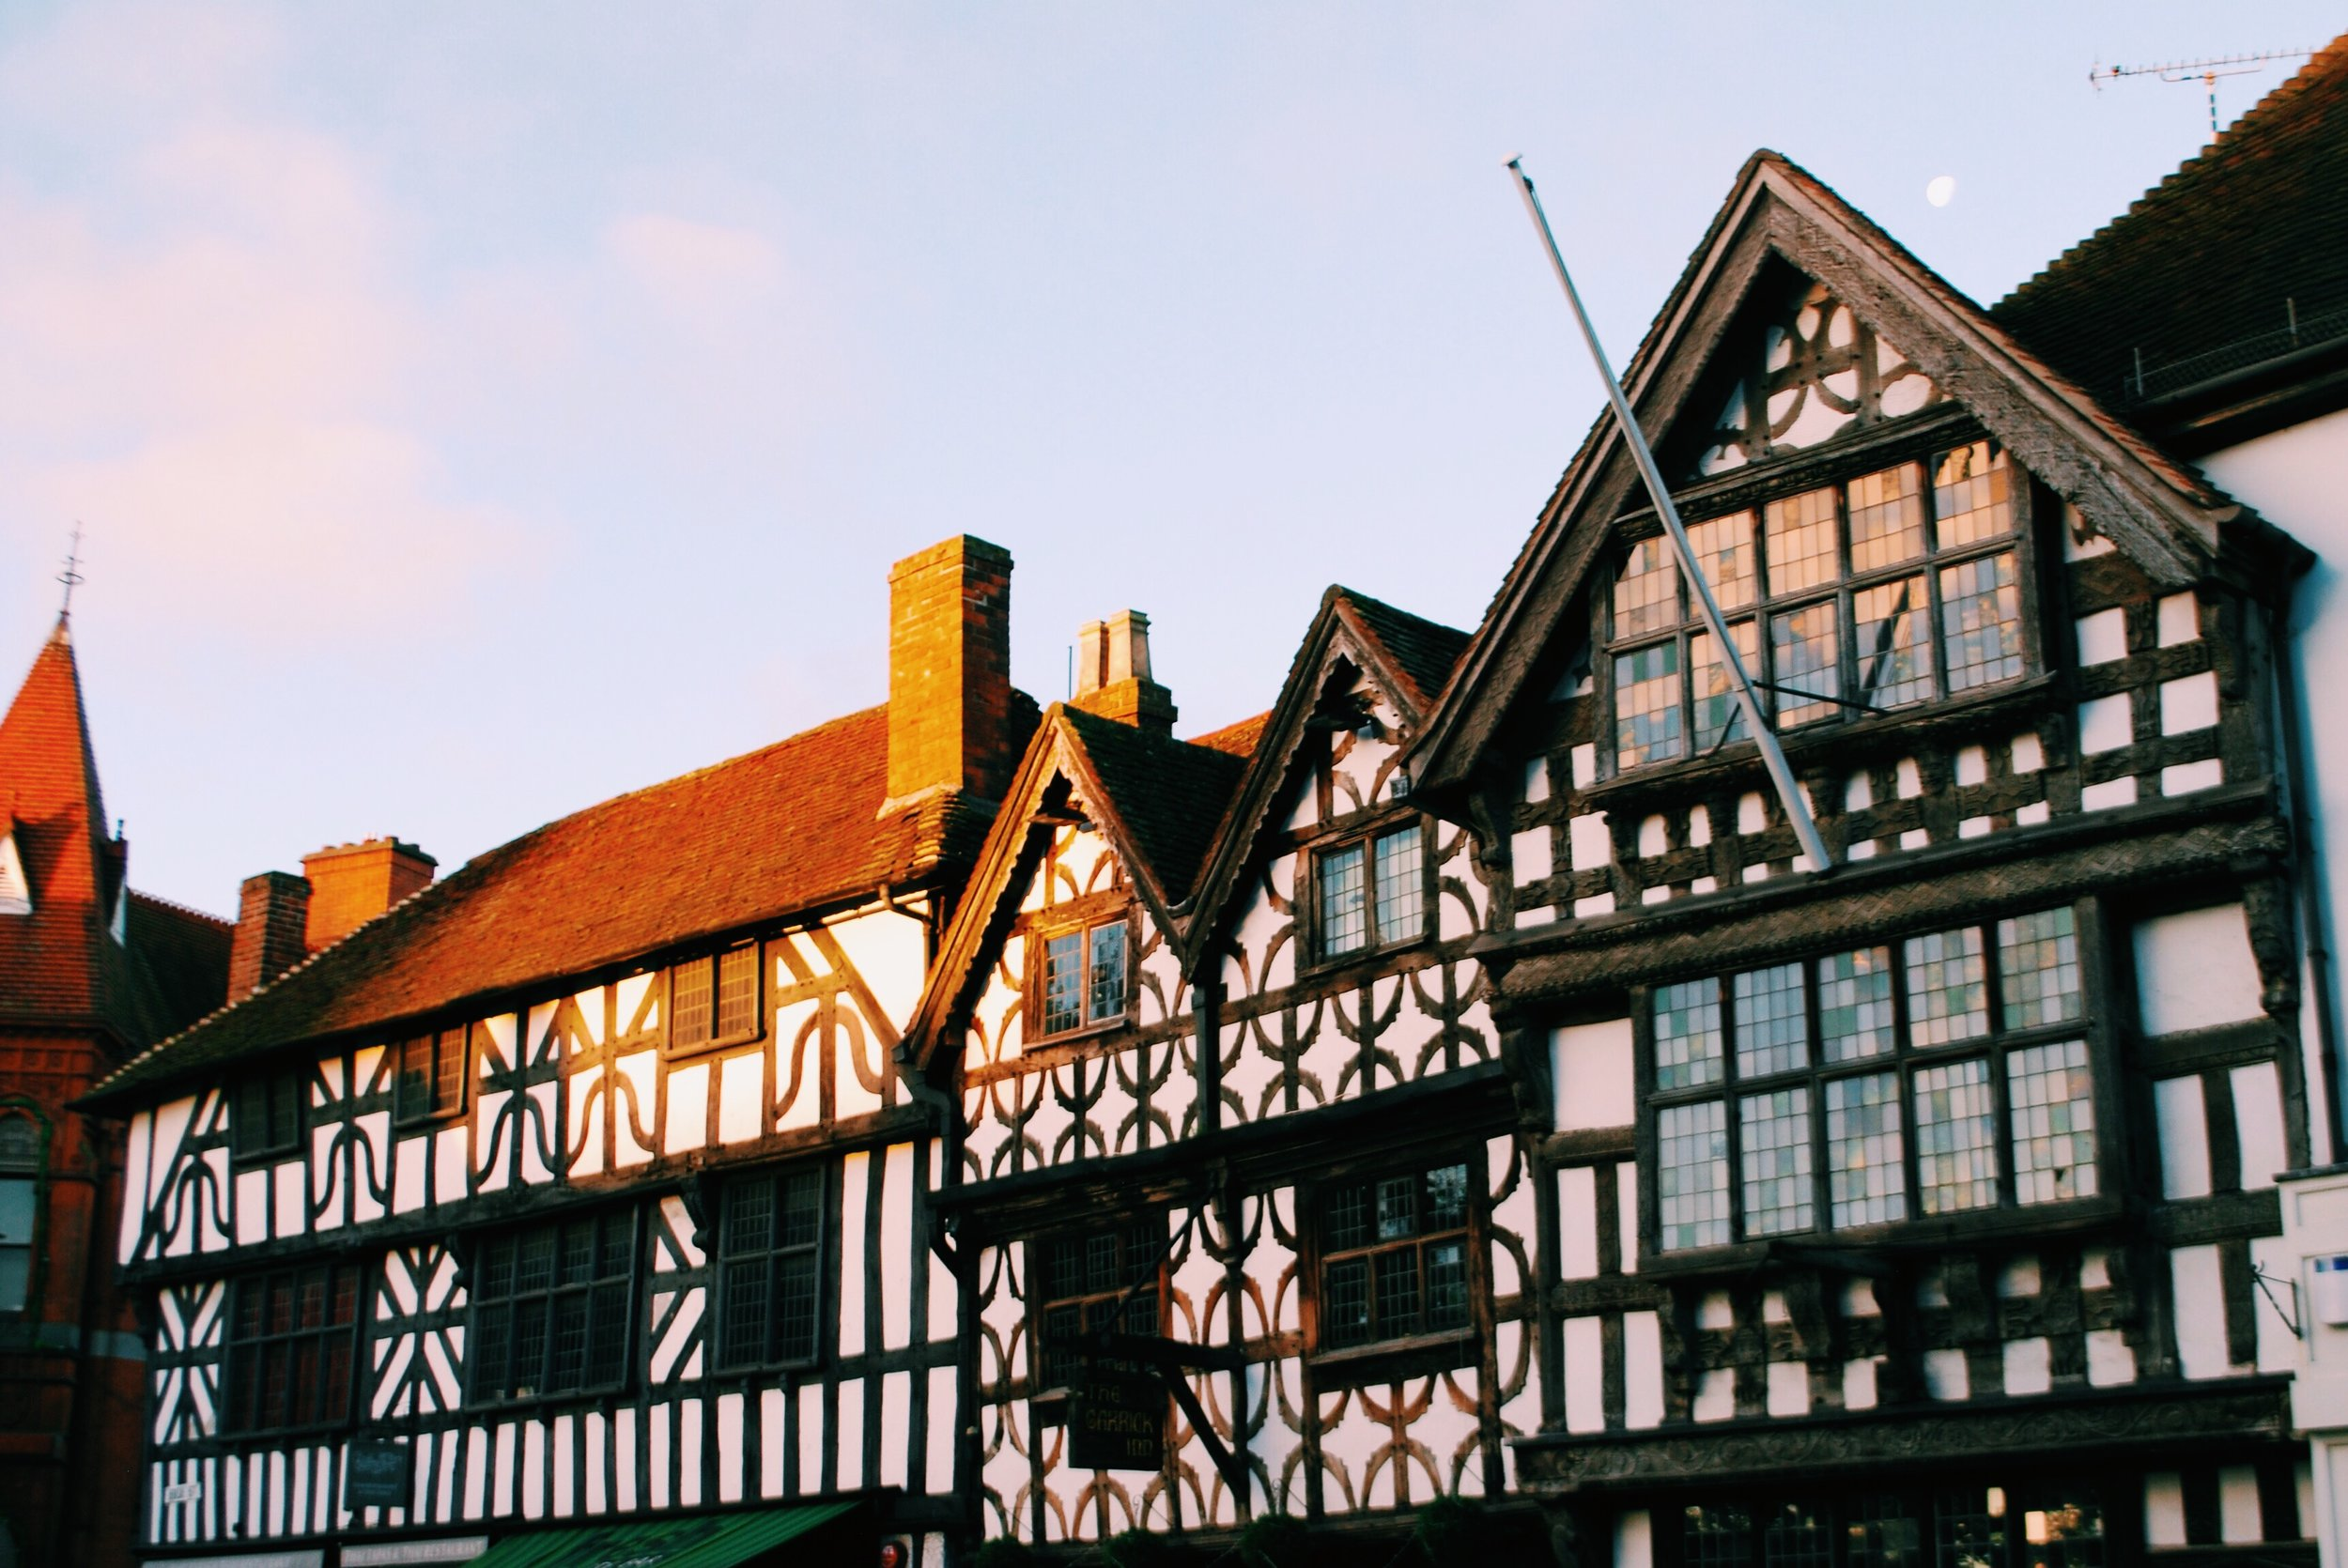 Things to do in Stratford-upon-Avon